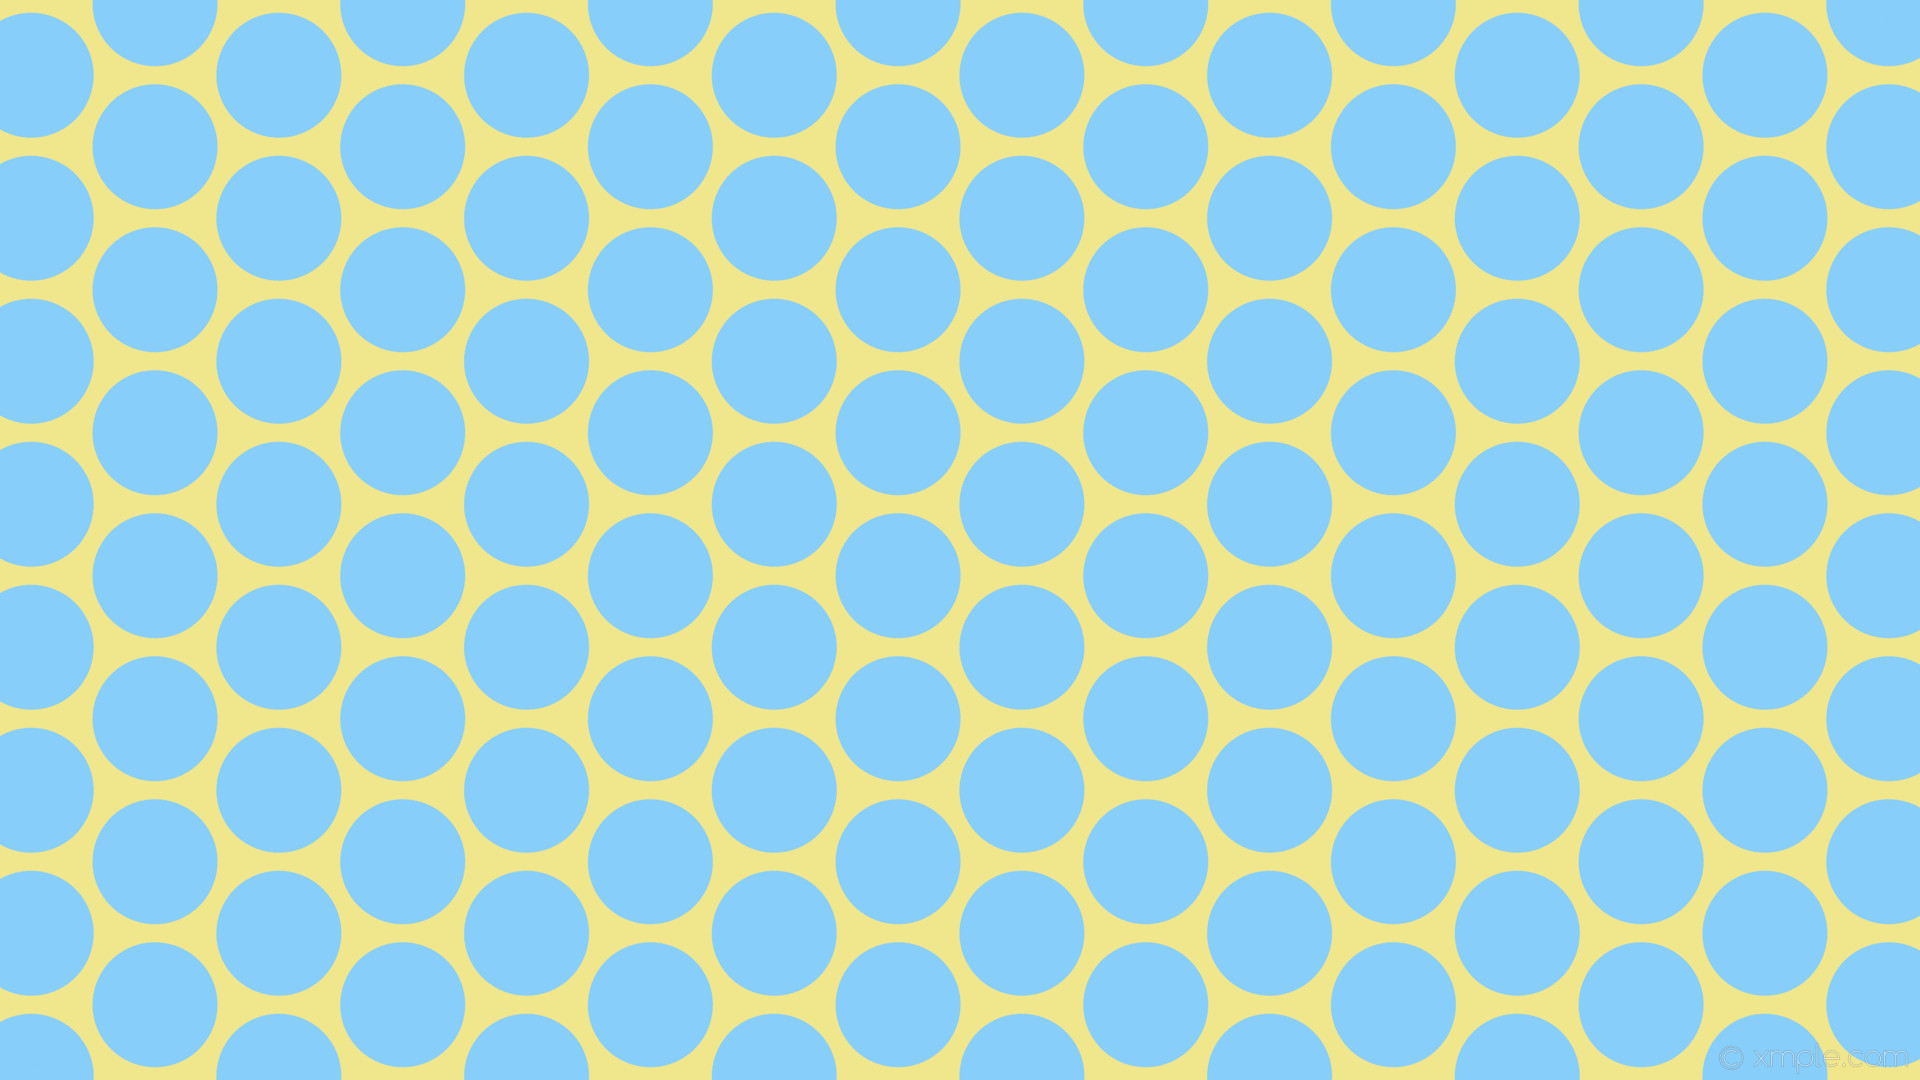 wallpaper yellow blue polka dots hexagon khaki light sky blue #f0e68c  #87cefa diagonal 30